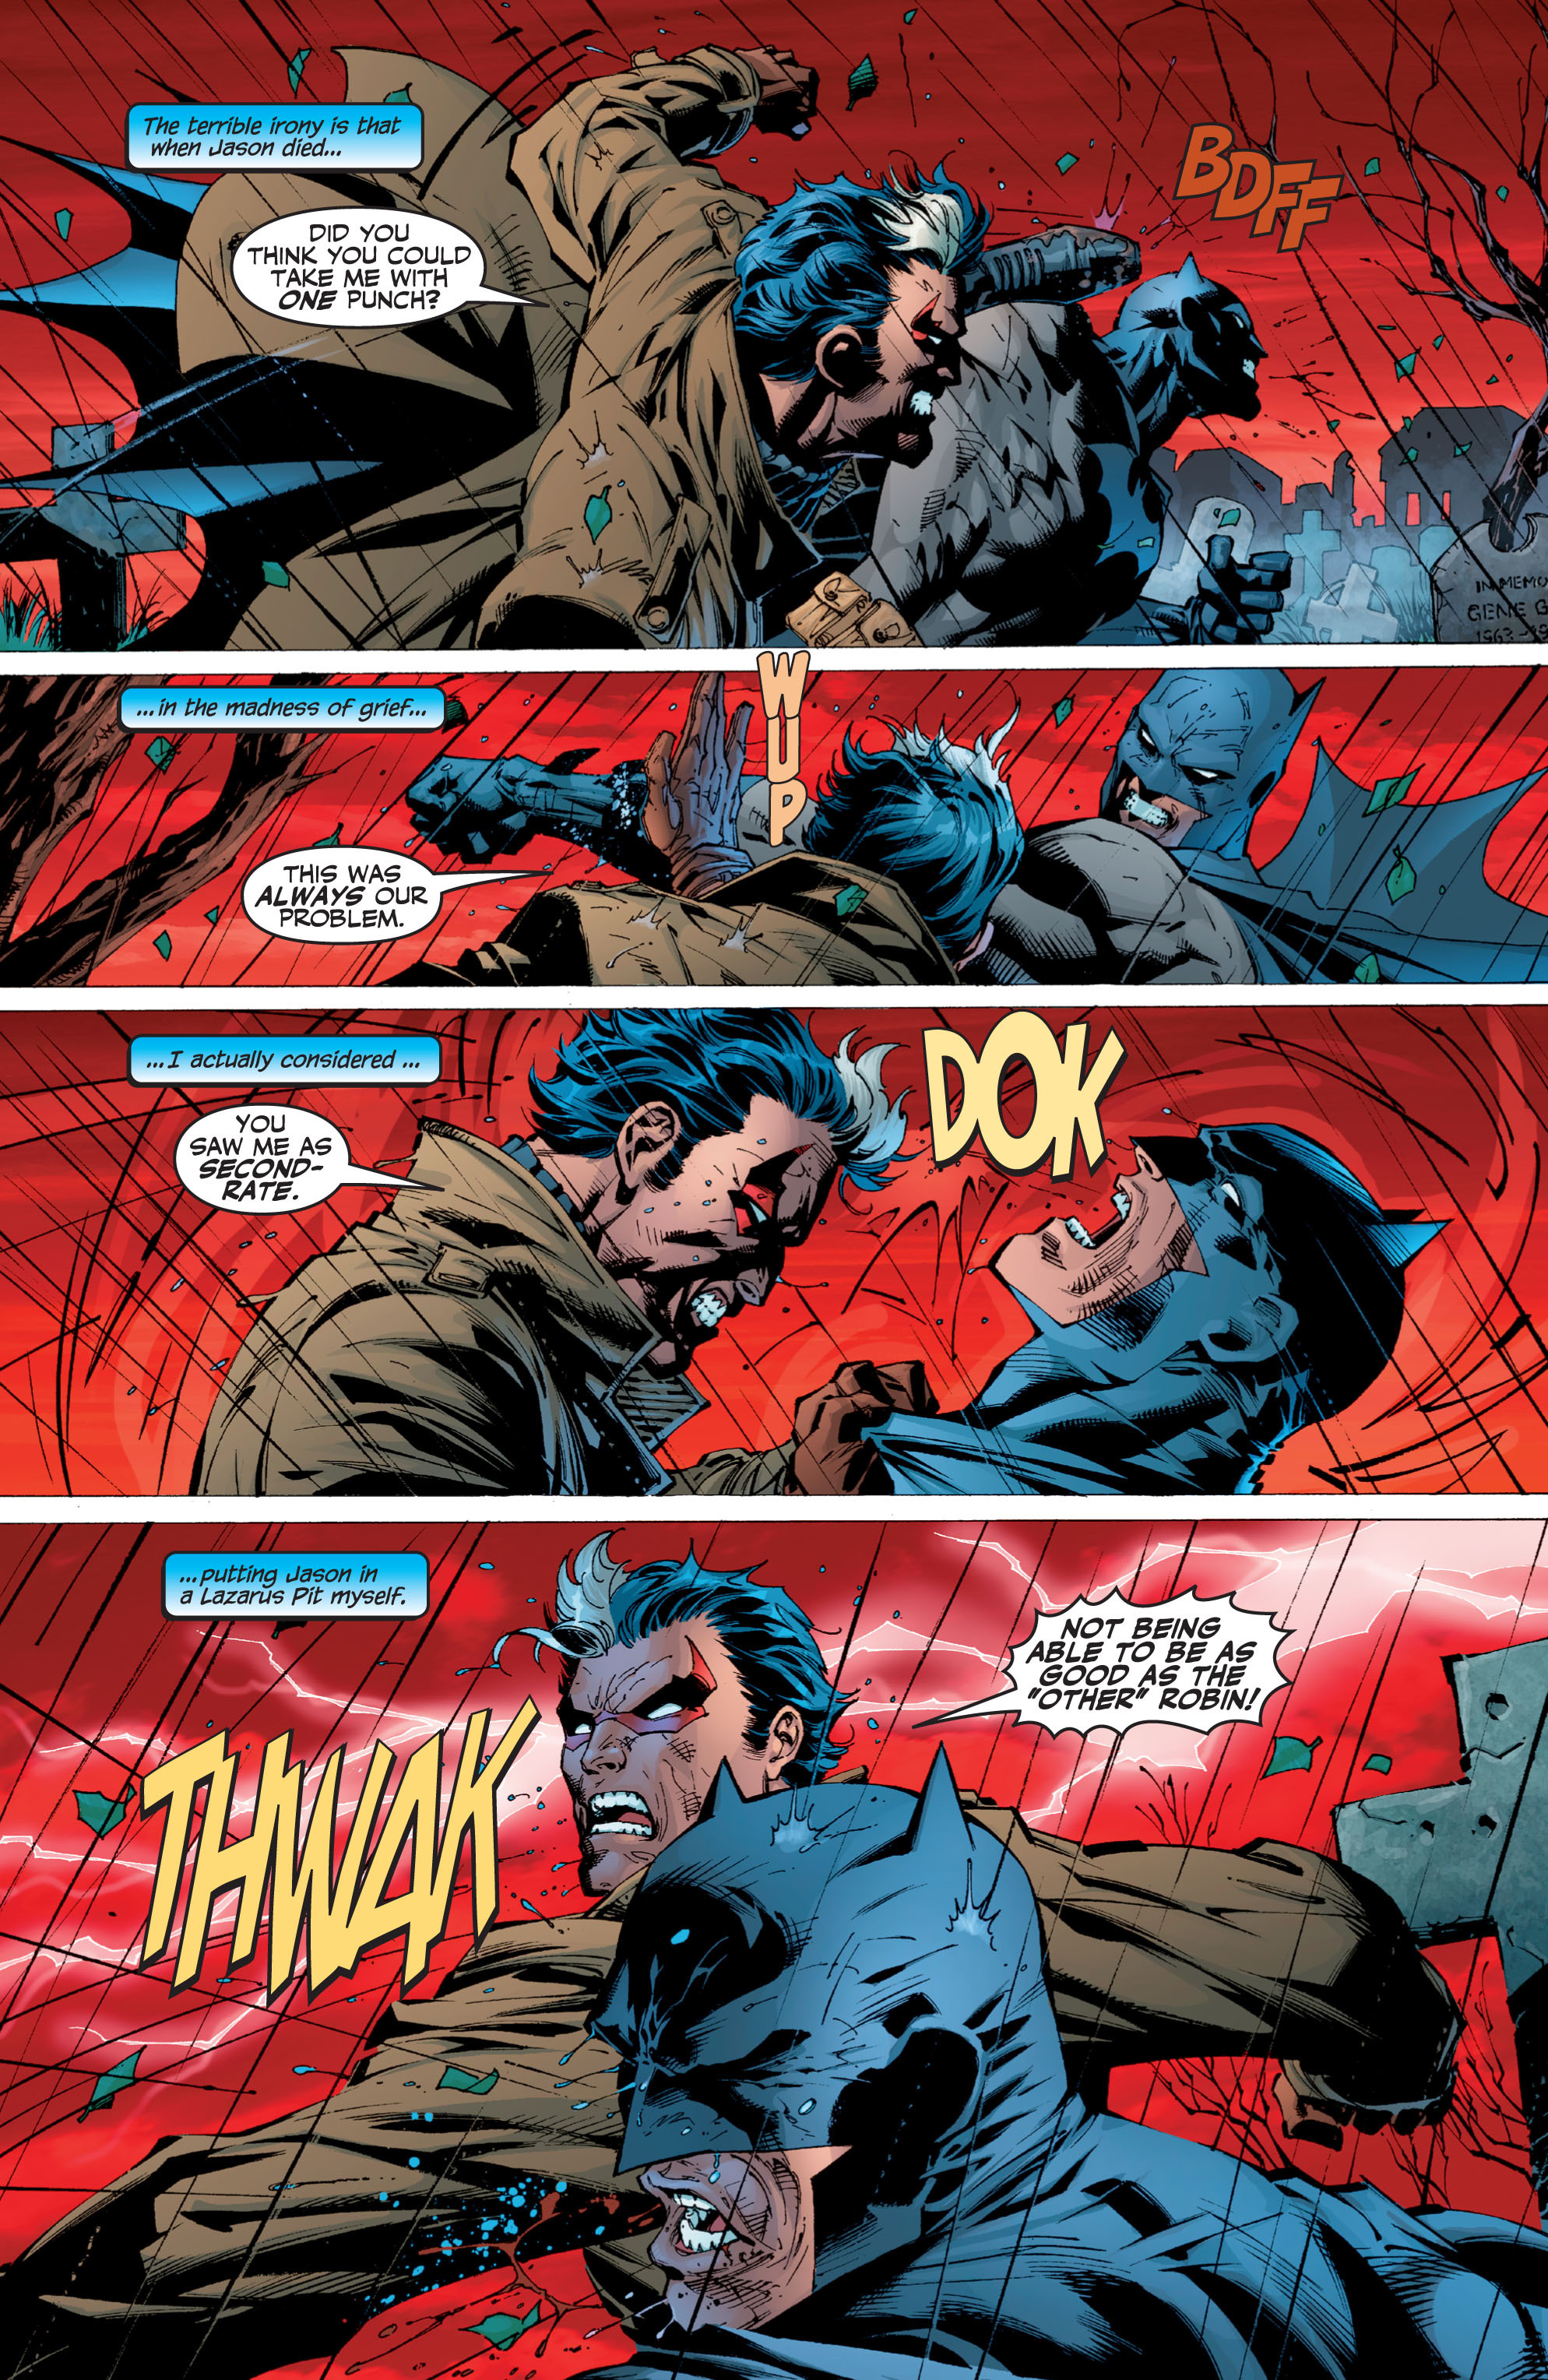 Read online Batman: Under The Red Hood comic -  Issue # Full - 365